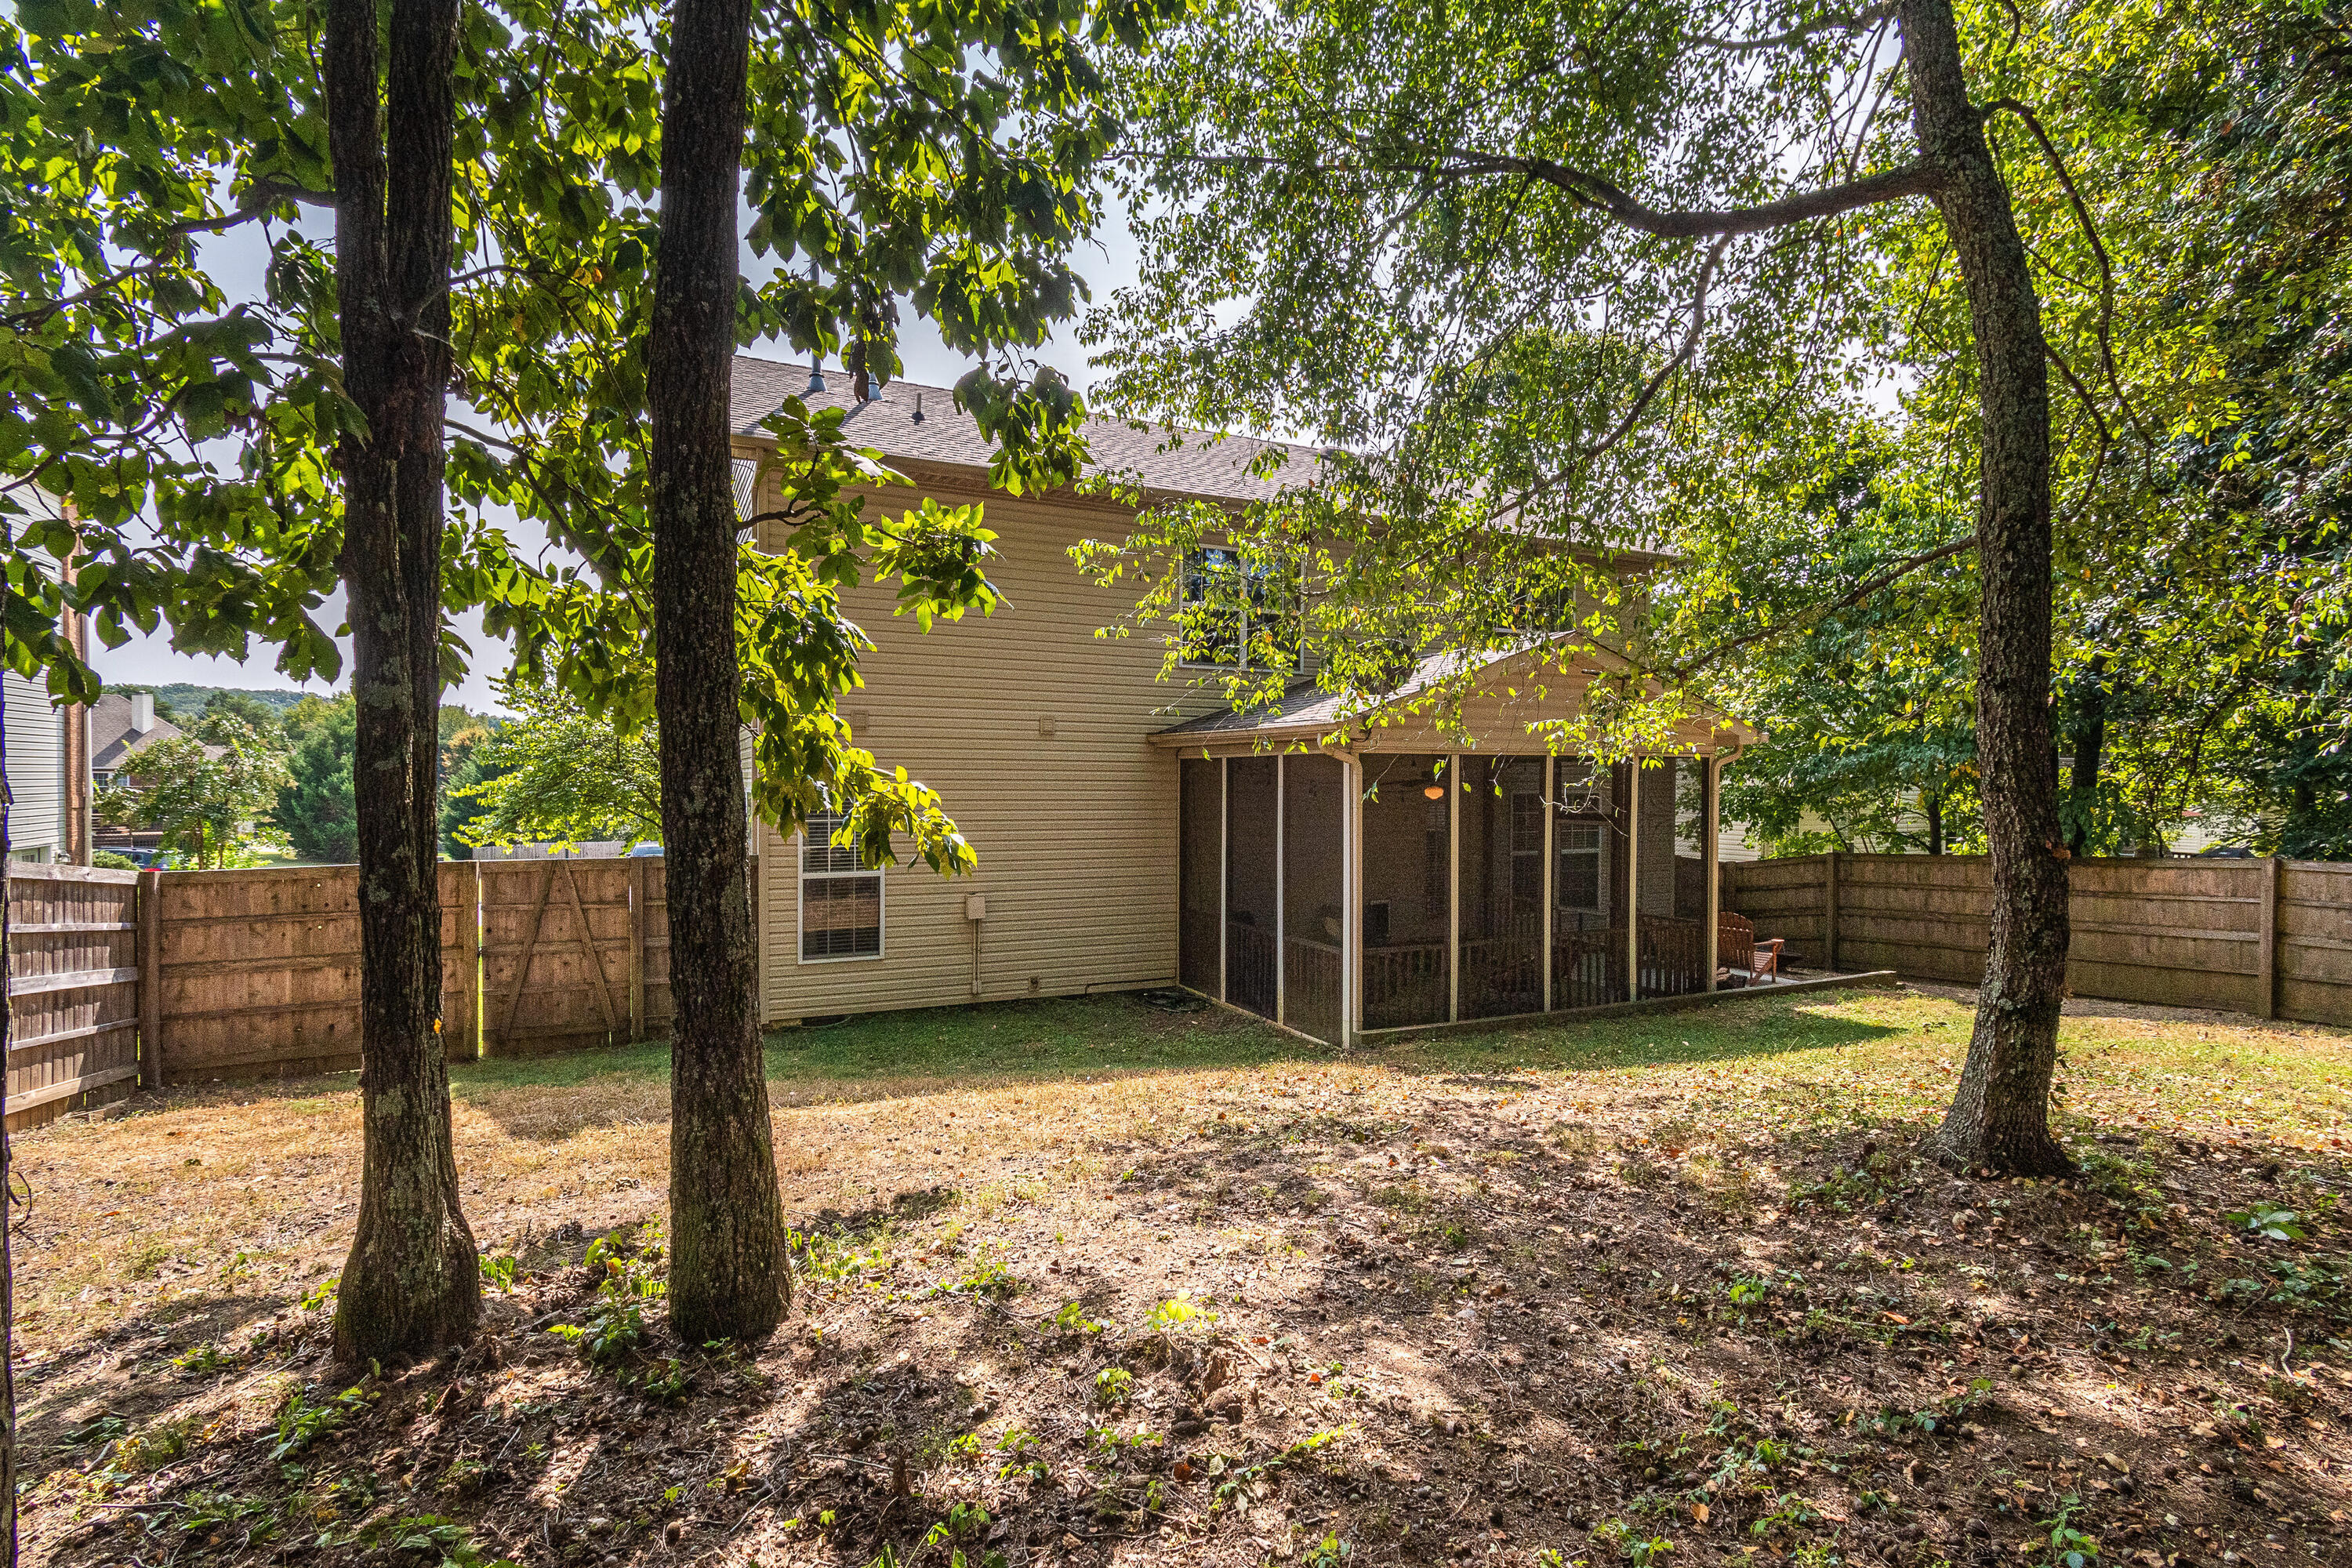 1435 Wineberry Rd, Powell, Tennessee 37849, 3 Bedrooms Bedrooms, ,2 BathroomsBathrooms,Single Family,For Sale,Wineberry,1129633